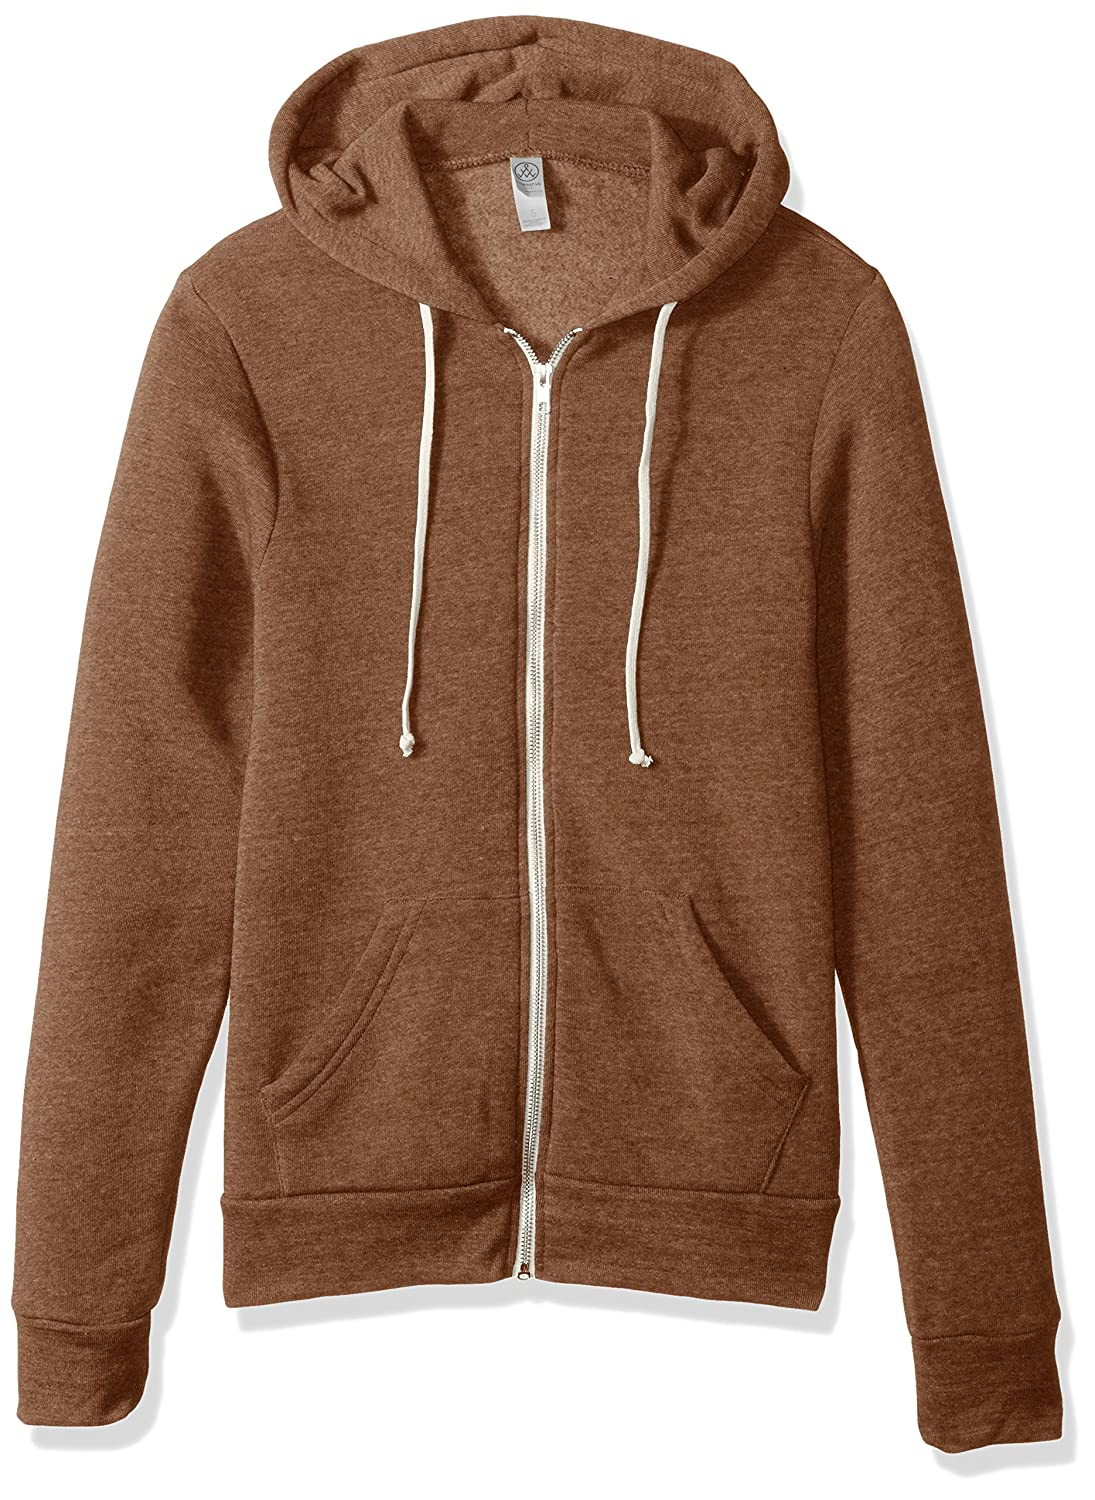 (オルタナティブ)Alternative Rocky Eco-Fleece Zip Hoodie B07657FLF2 Medium|Eco True Emperador Eco True Emperador Medium